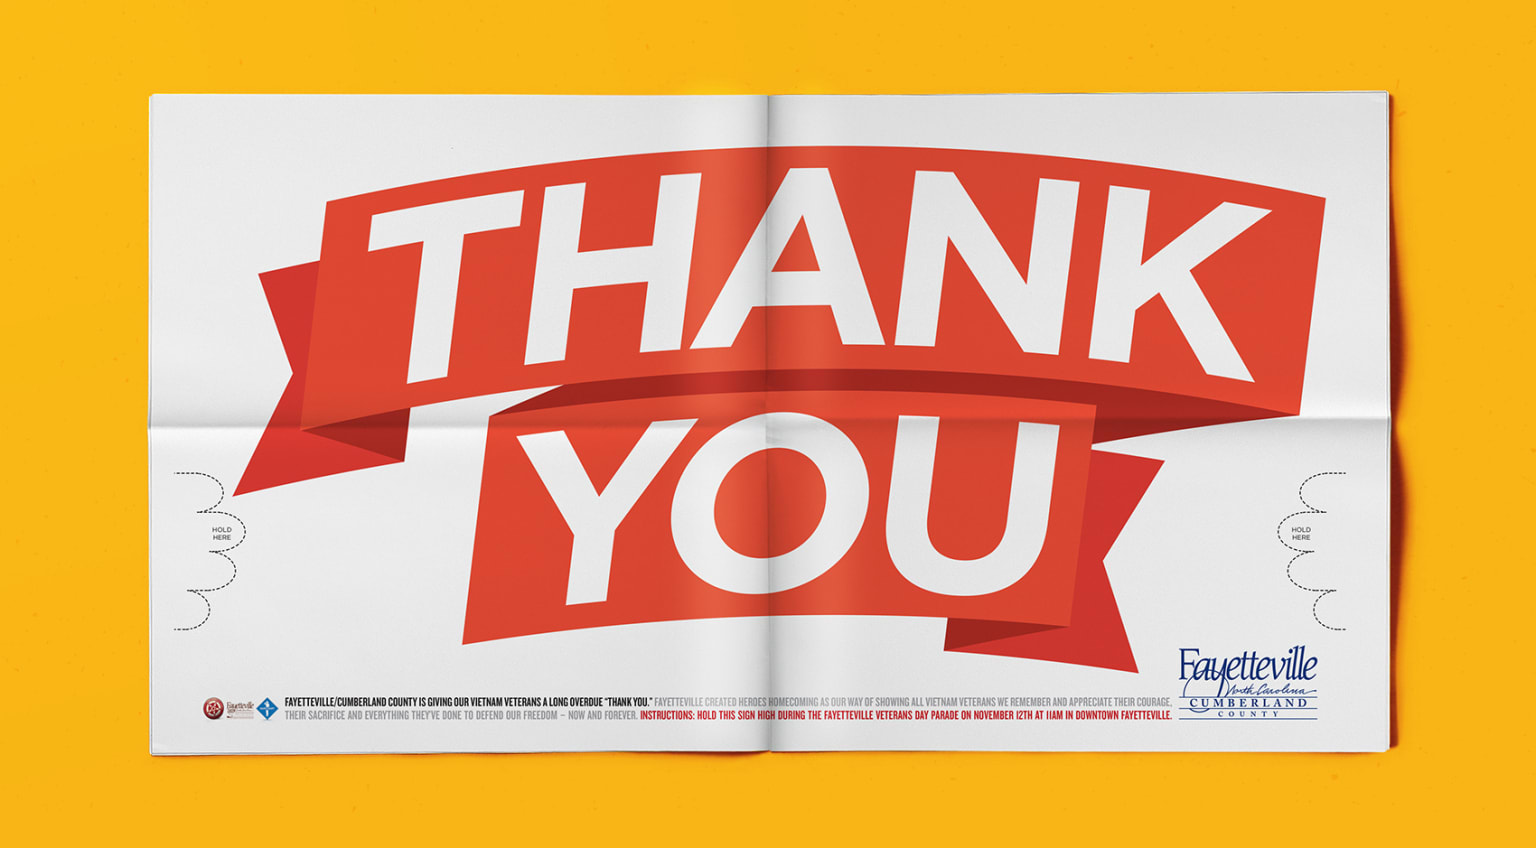 Fayetteville Thank You banner/ad